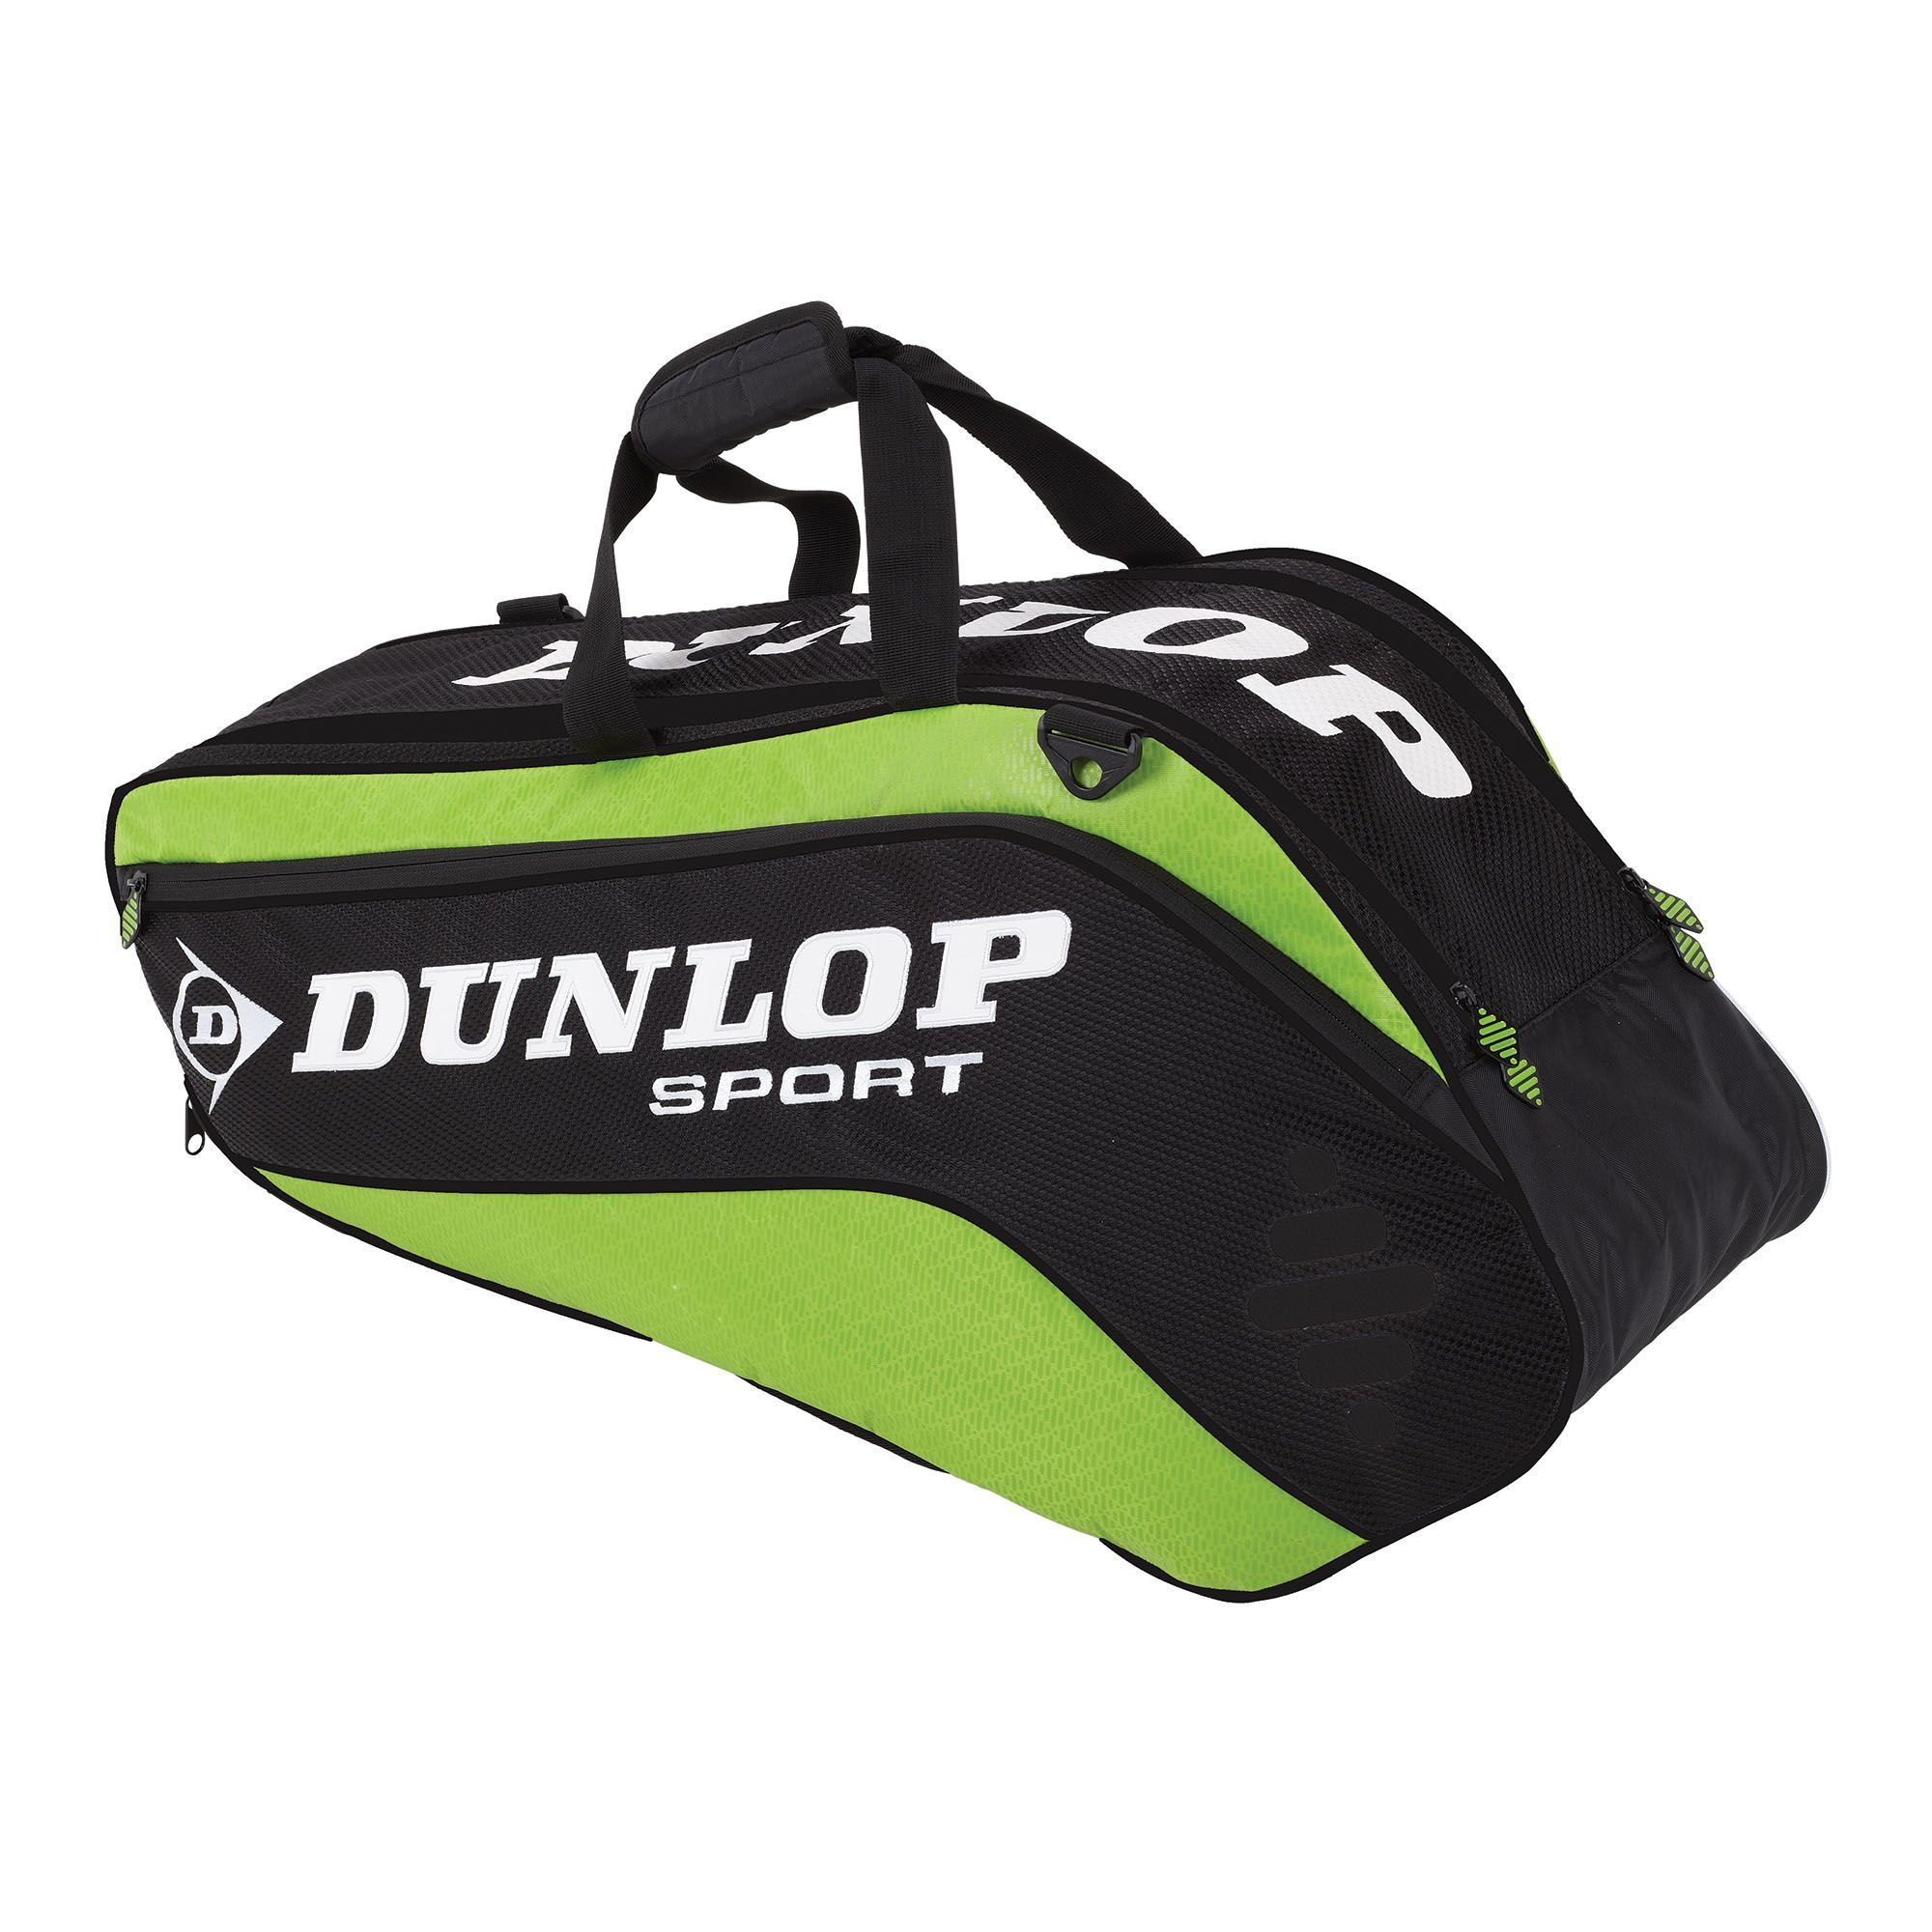 dunlop-biomimetic-tour-6-squash-bag-green